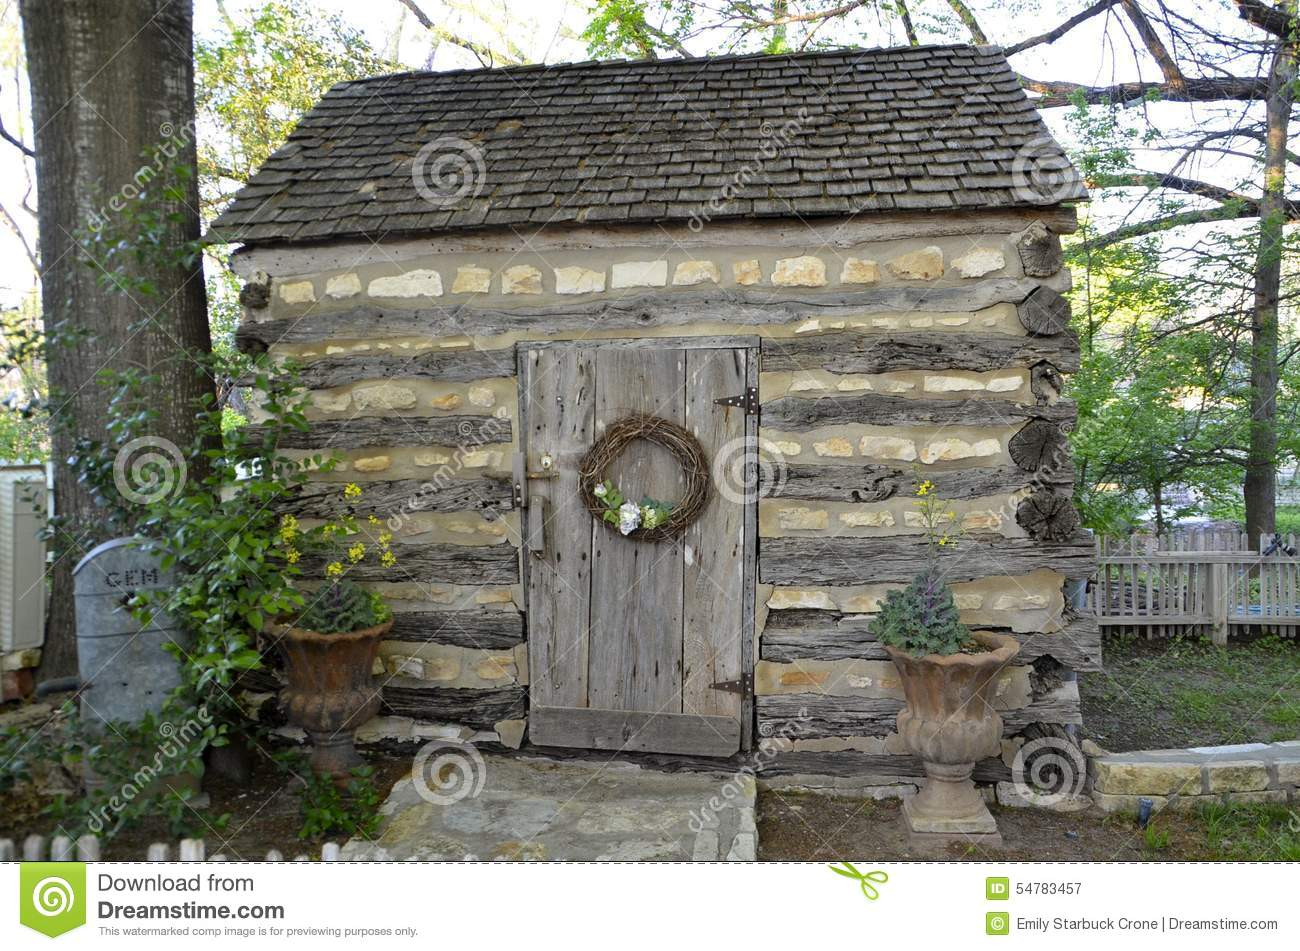 A Small Rustic Stone And Log Cabin In The Country Stock Image - Image: 54783457